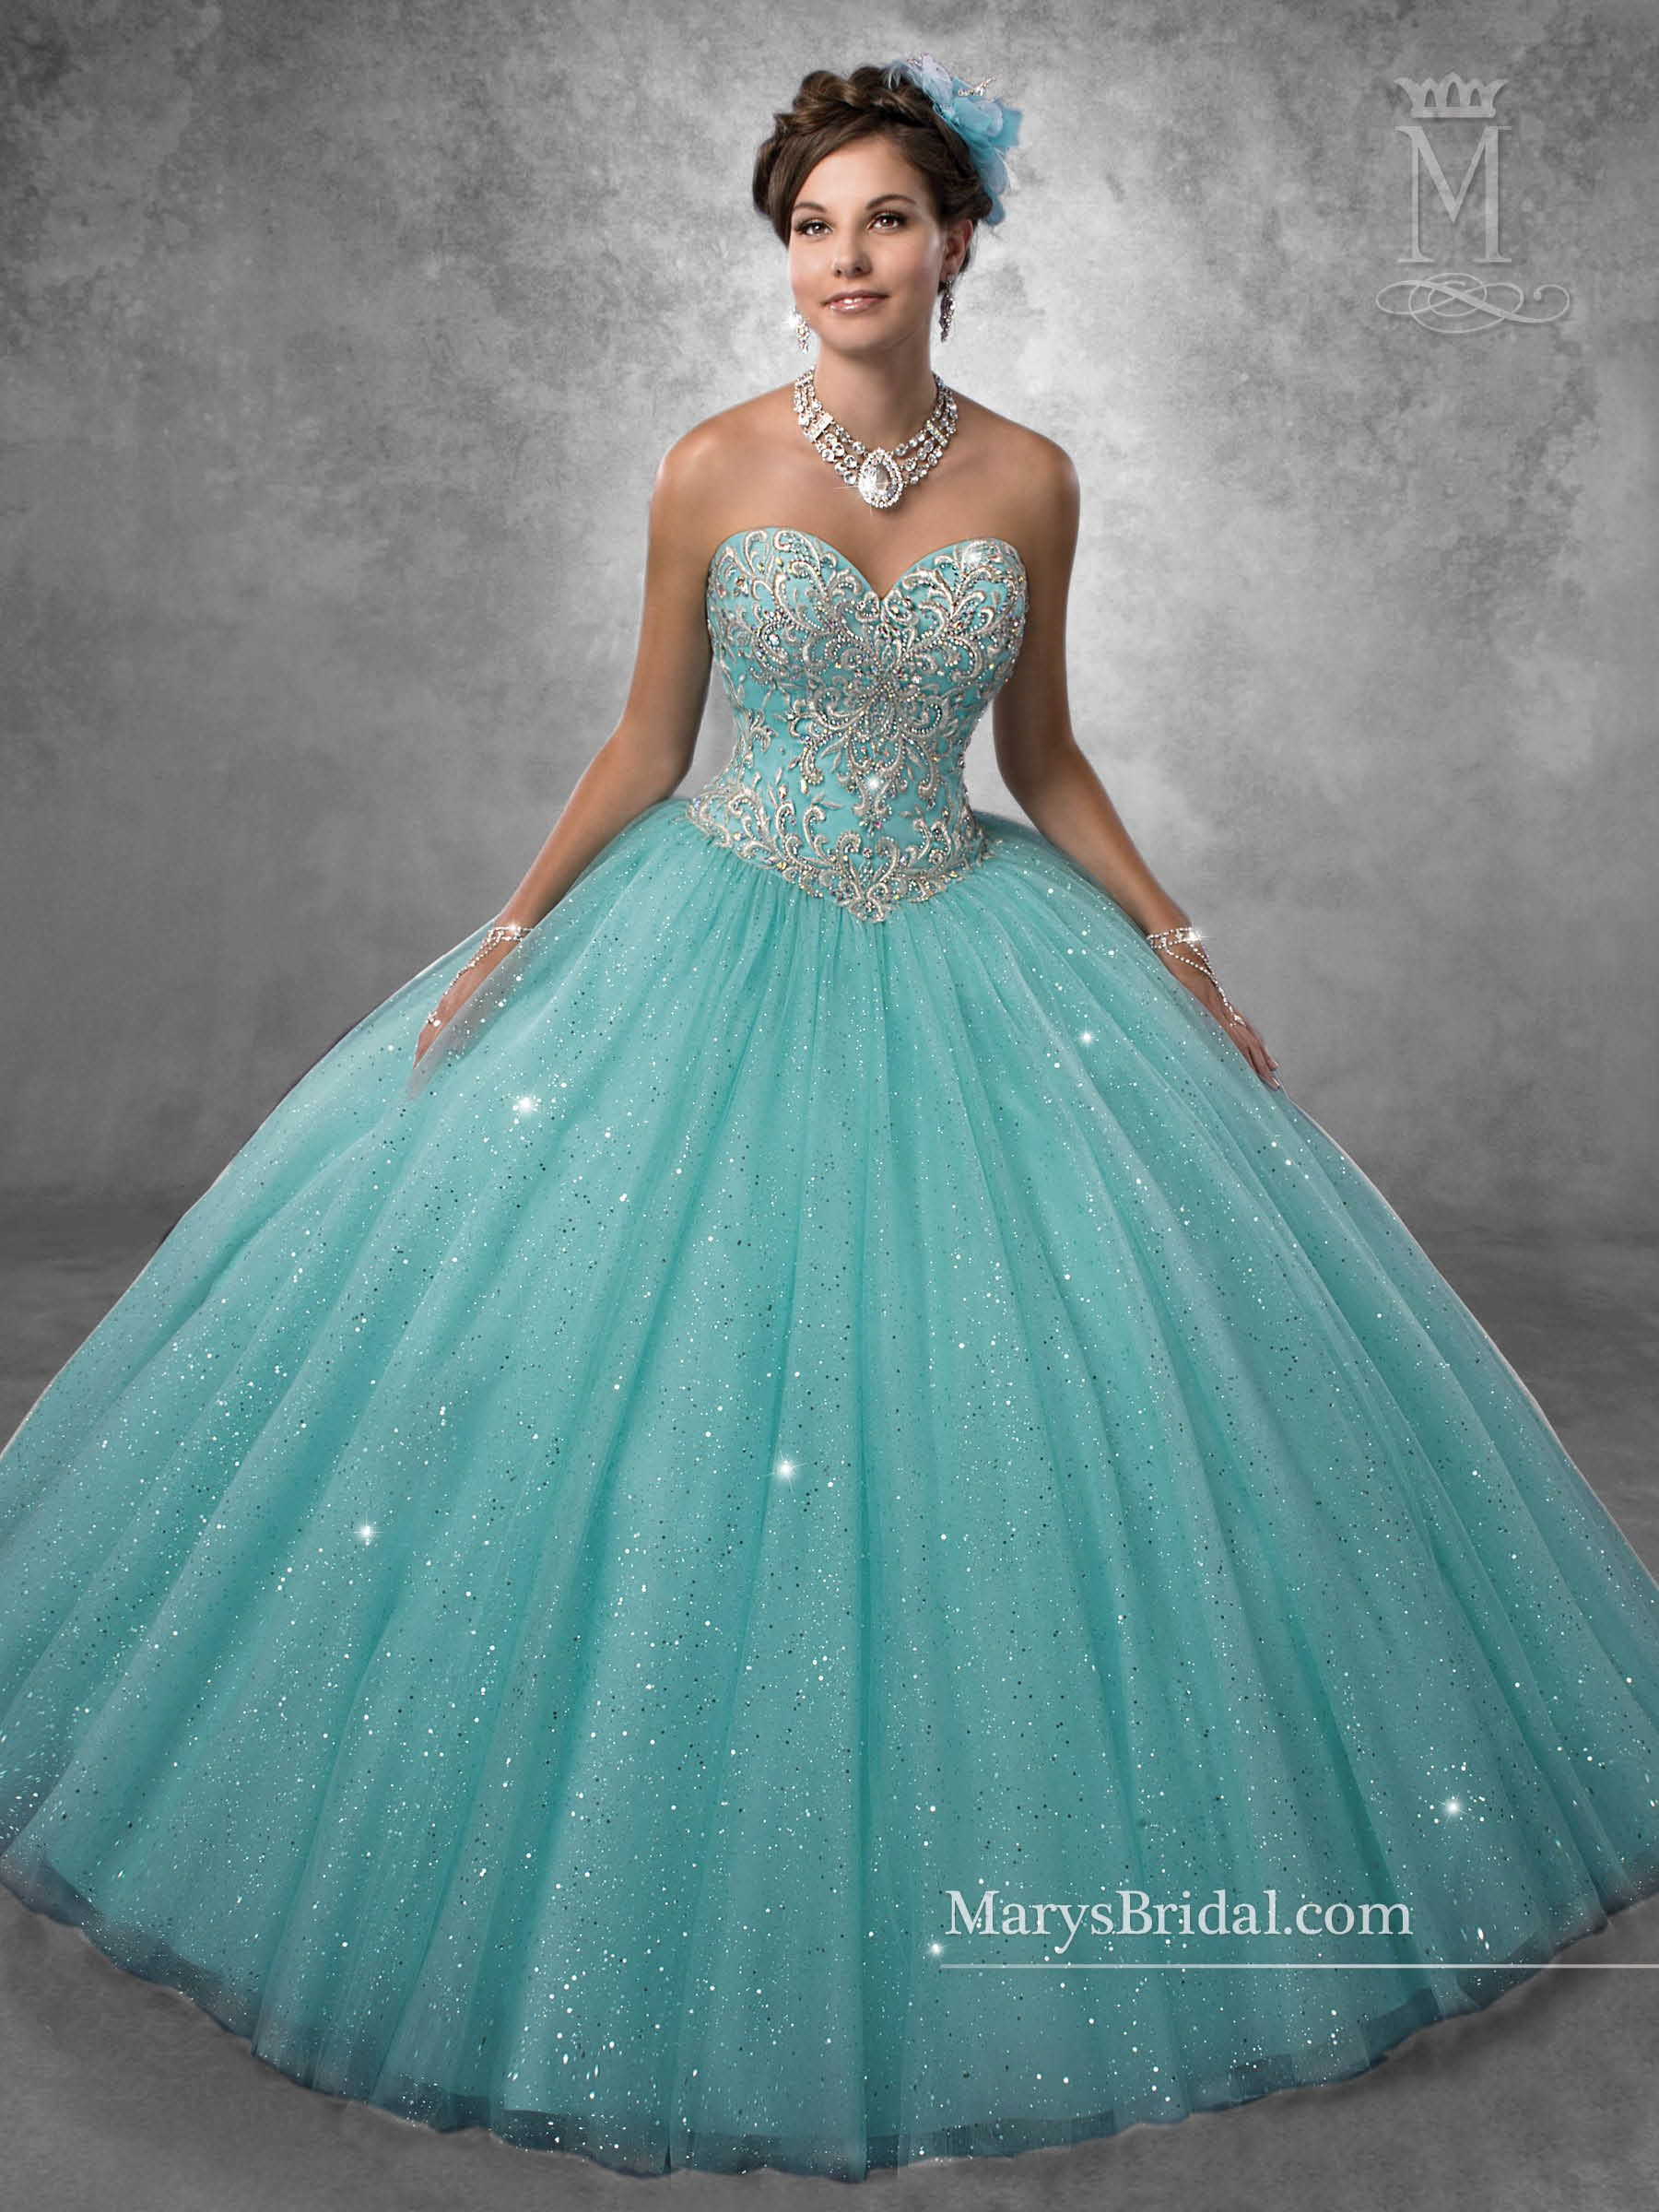 Mary\'s style ID 4Q470 | Dresses | Pinterest | Bridal gowns ...